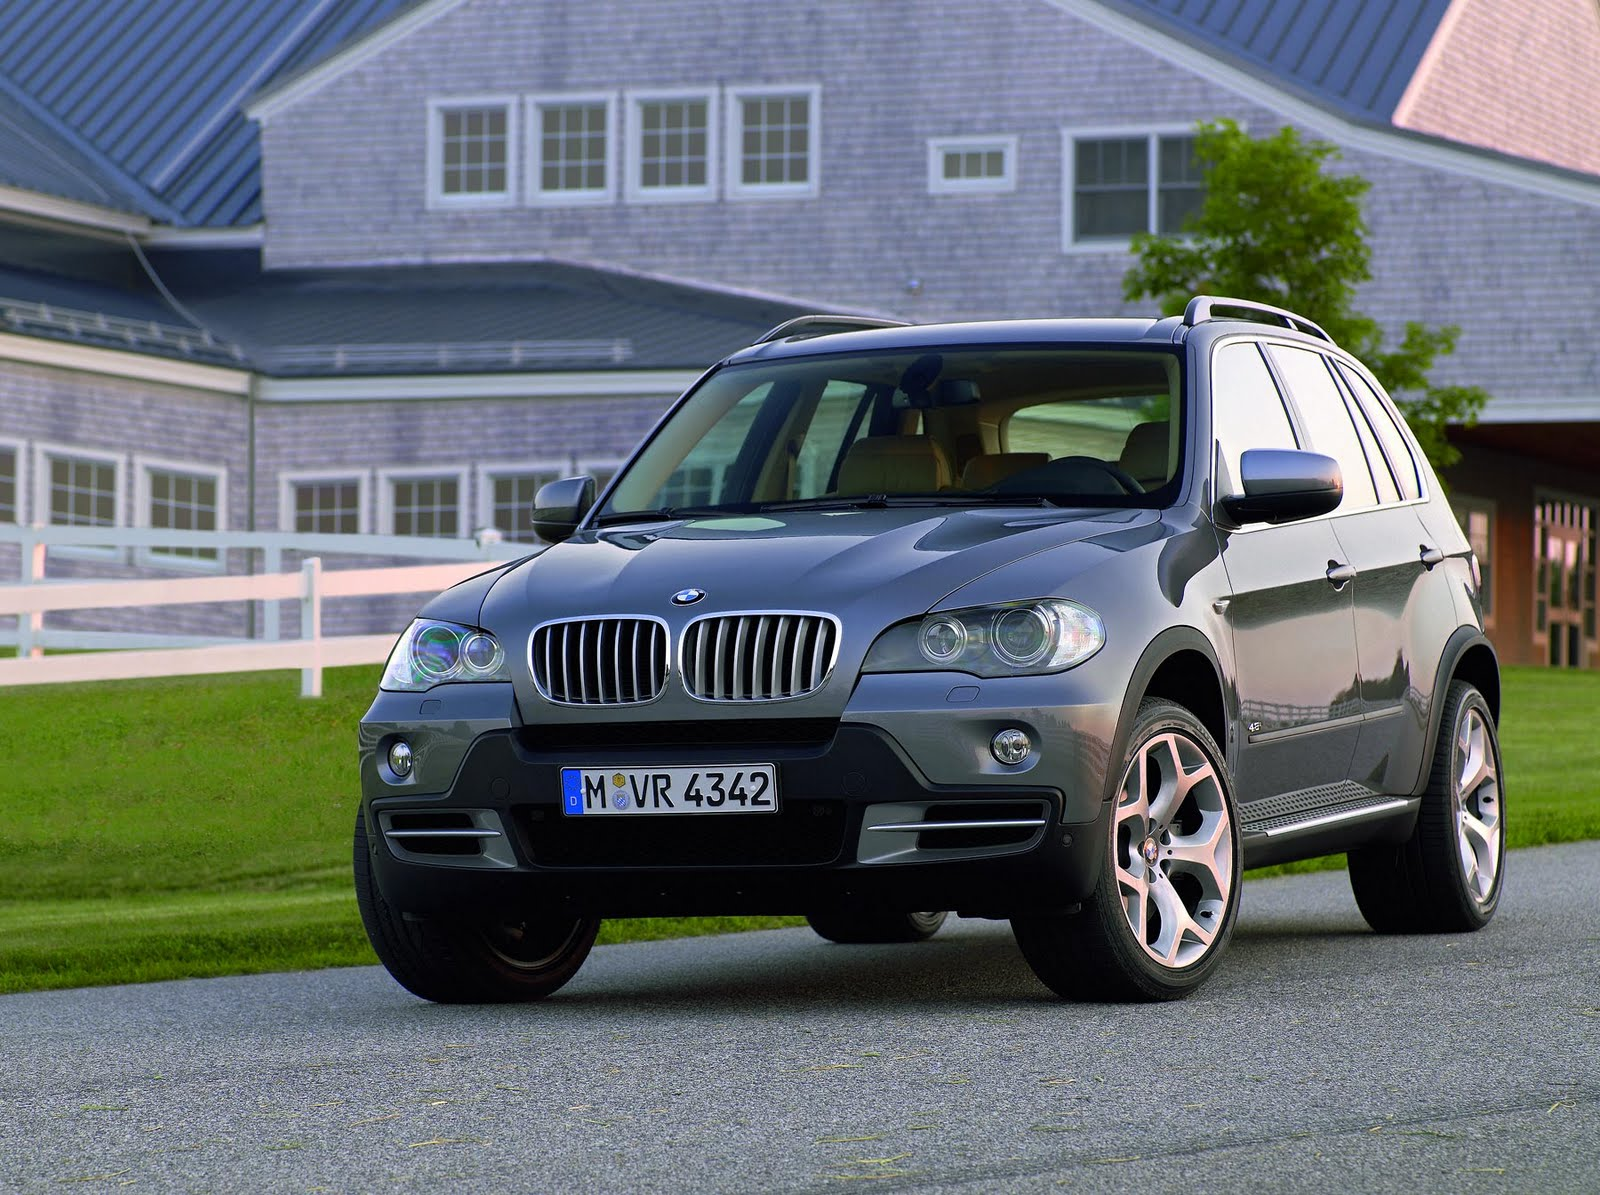 Sports cars bmw x5 wallpaper hd widescreen bmw x5 wallpaper hd widescreen voltagebd Image collections